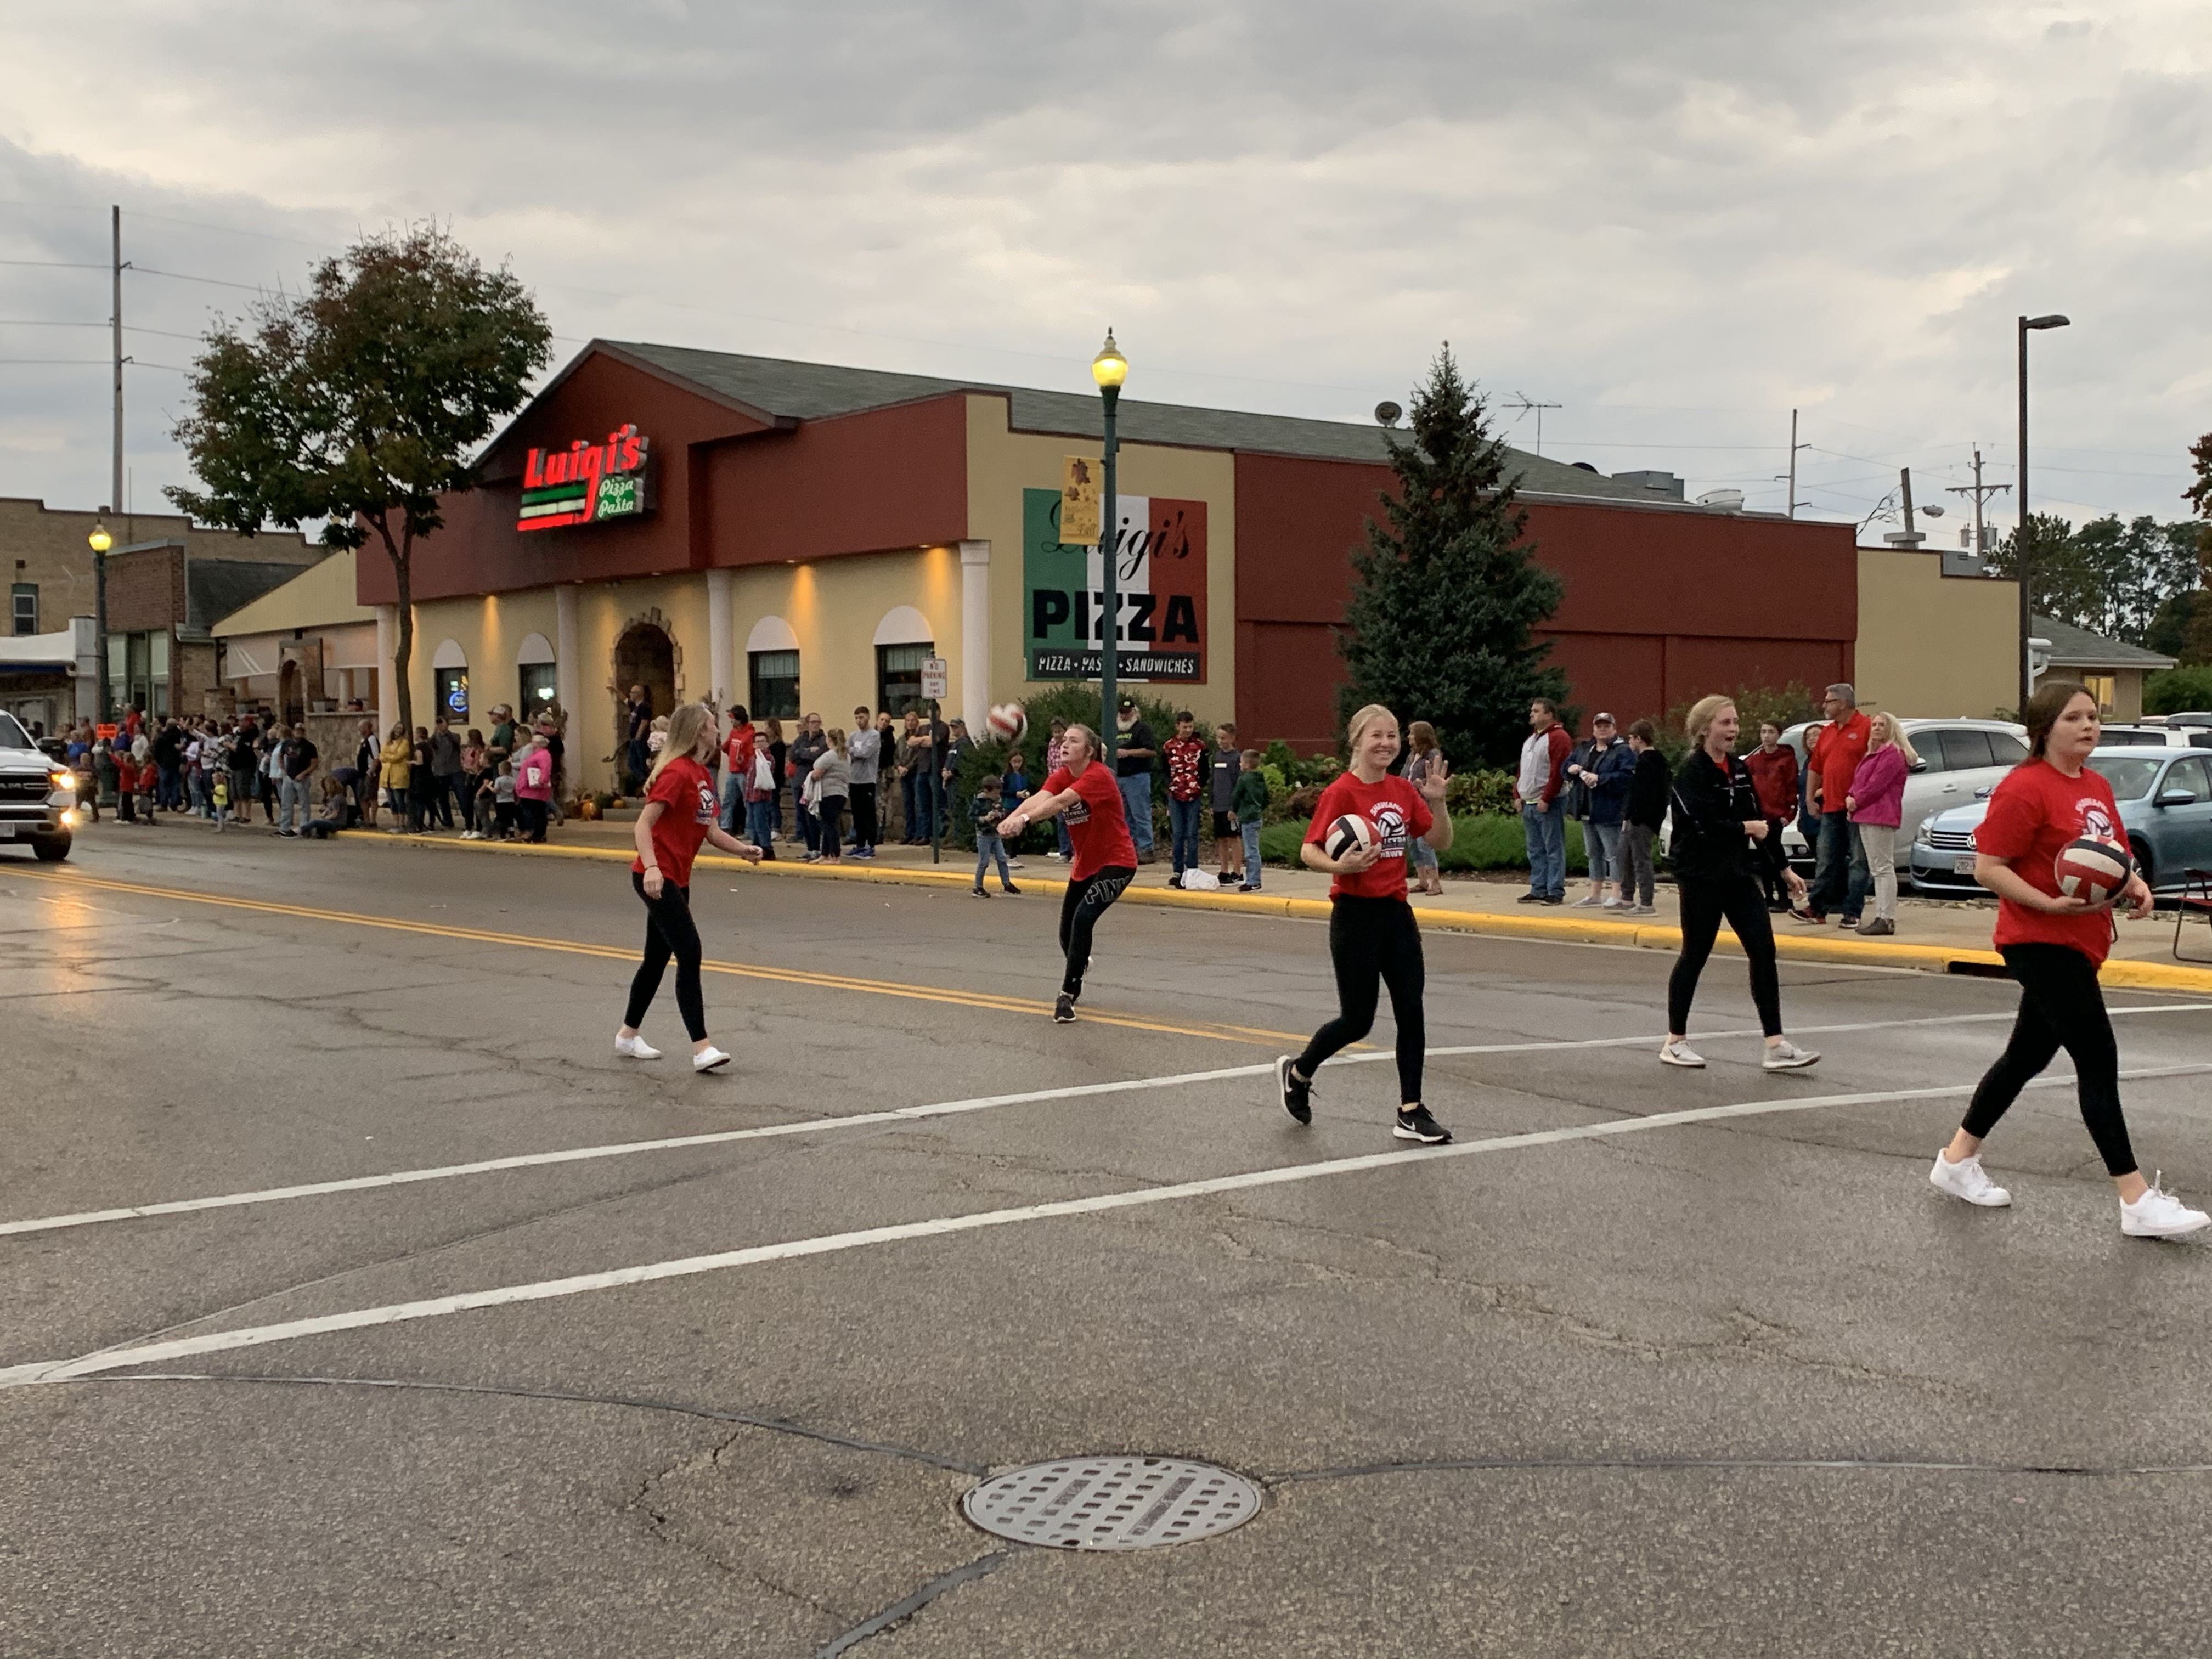 The Shawano volleyball team bumps, sets and spikes balls back and forth as they march down Main Street during the homecoming parade on Sept. 24.Luke Reimer | NEW Media